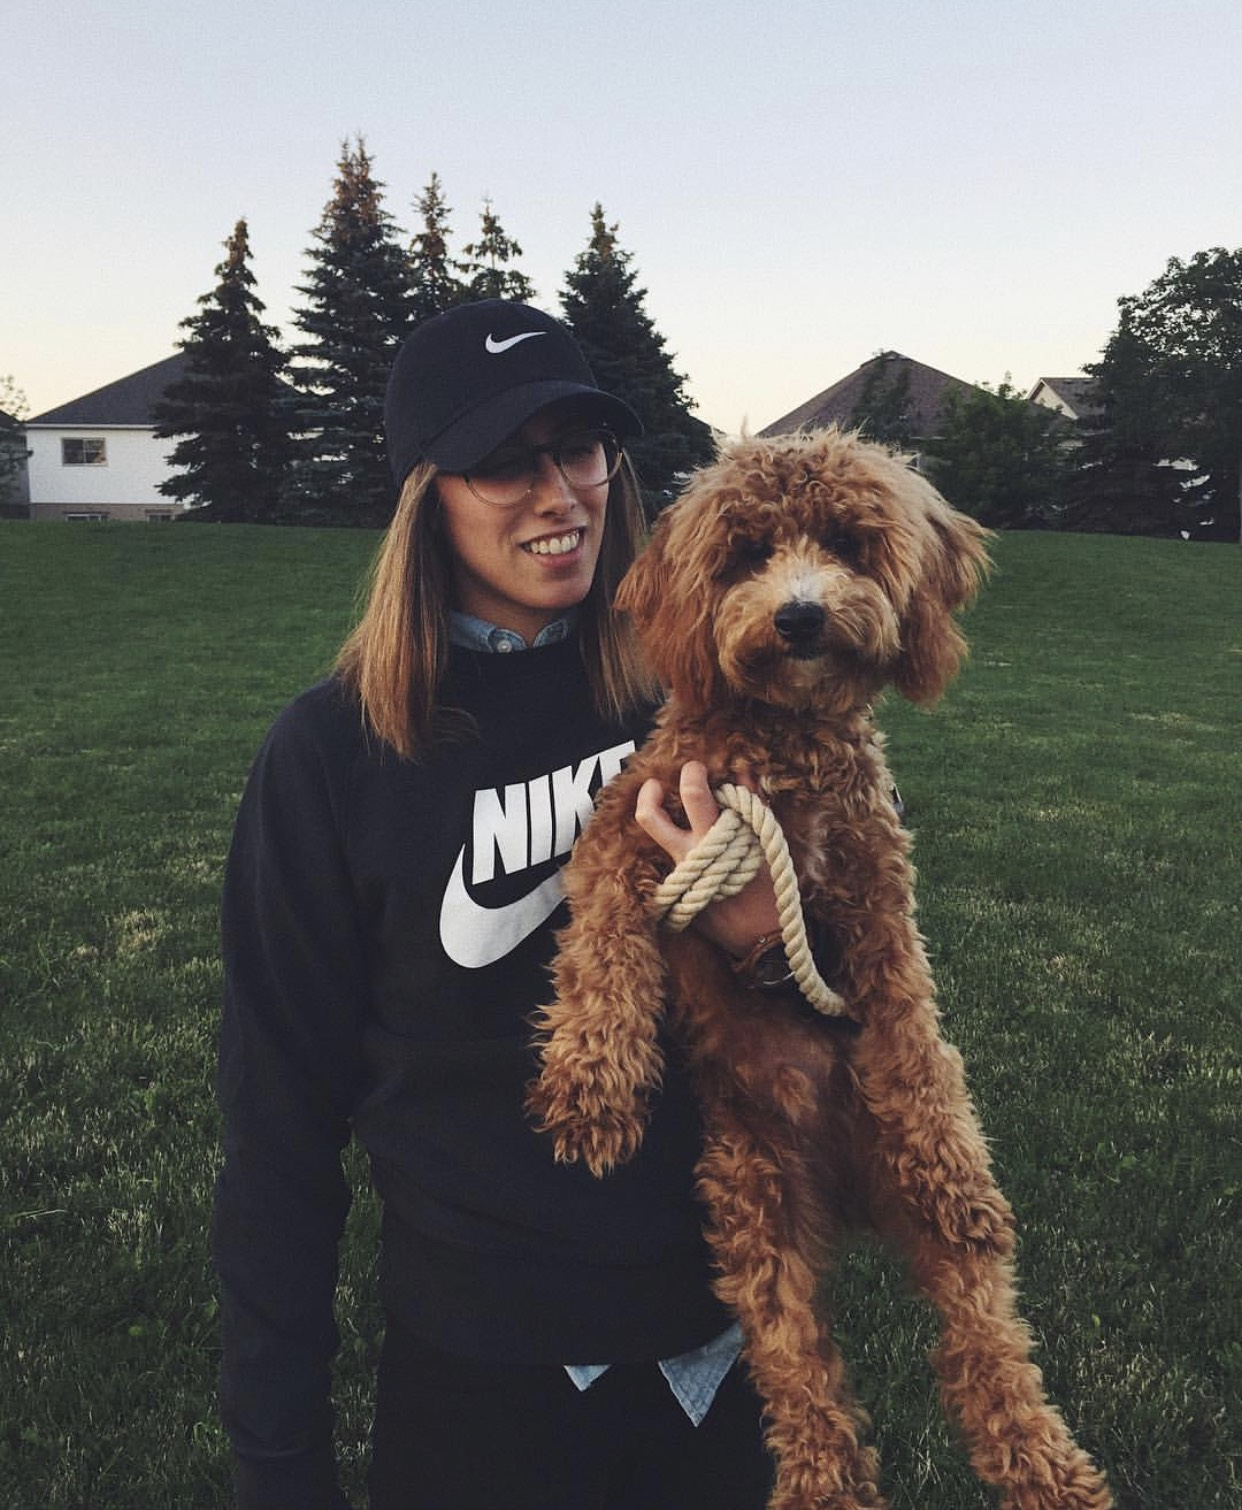 Co-Founder Mariana & her dog Walter